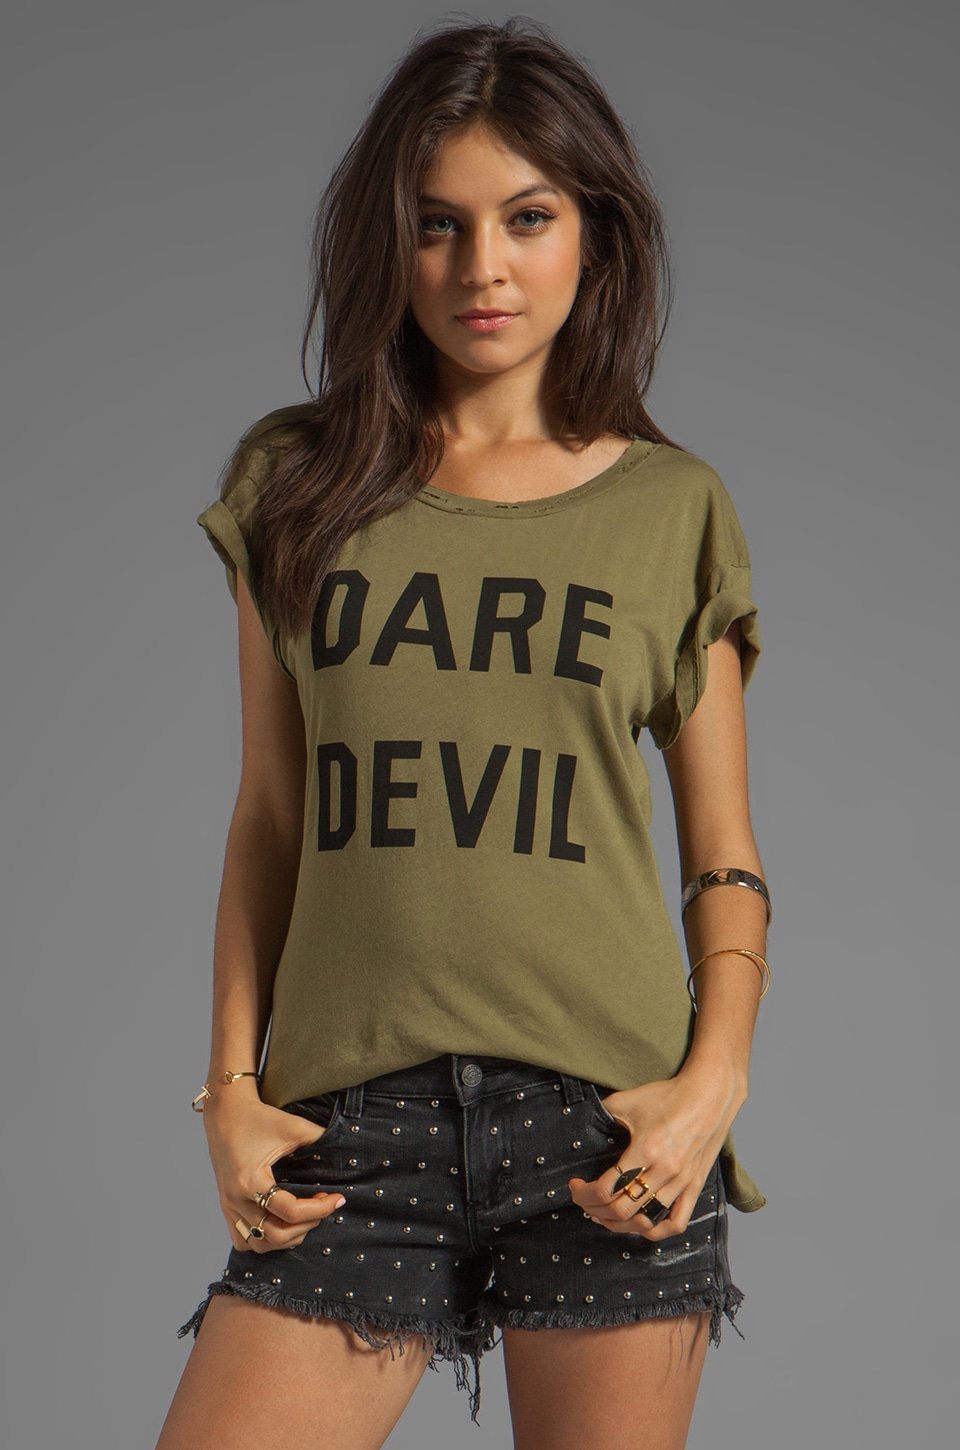 Wildfox Couture Dare Devil Tee in Vintage Army